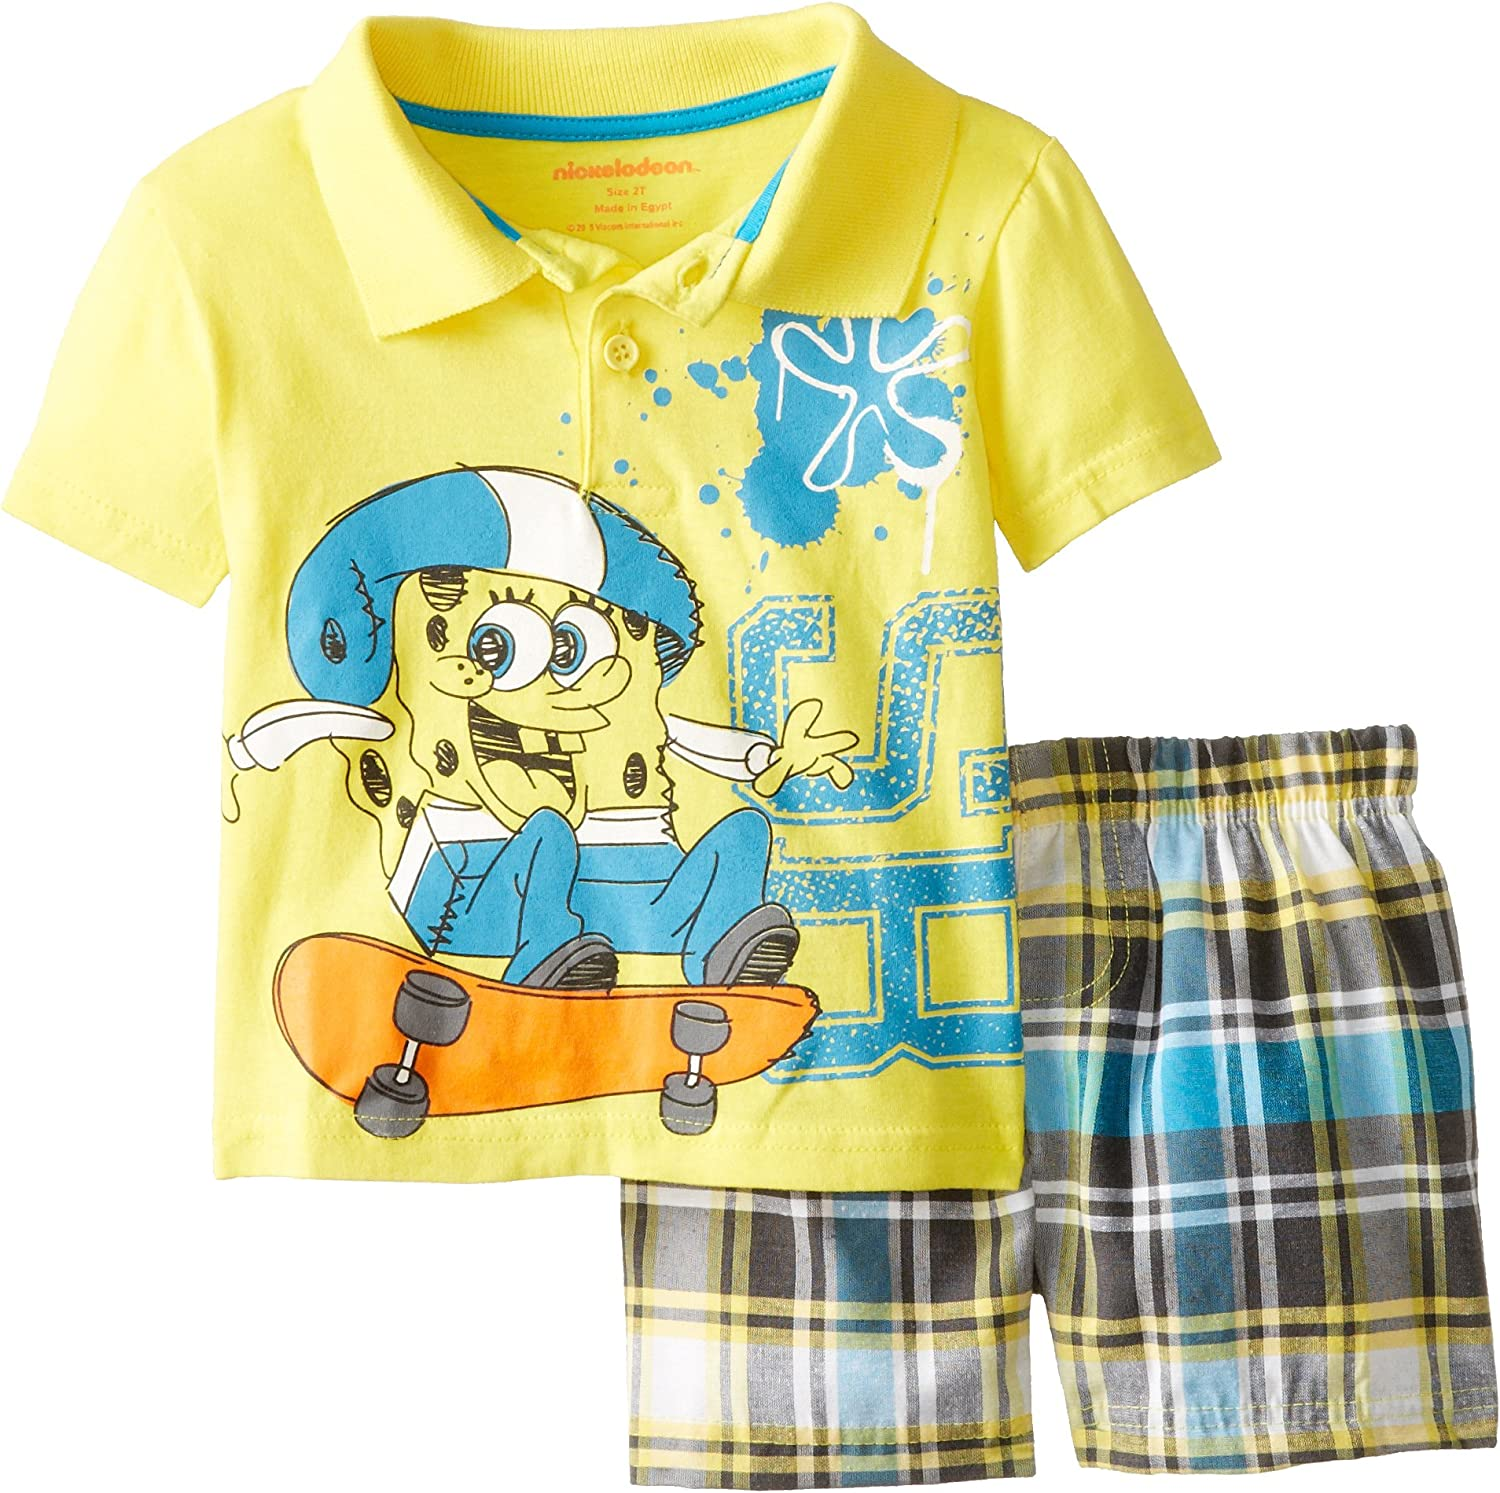 Nickelodeon Sponge Bob 3pieces Toddler Outfit Set 2T-4T